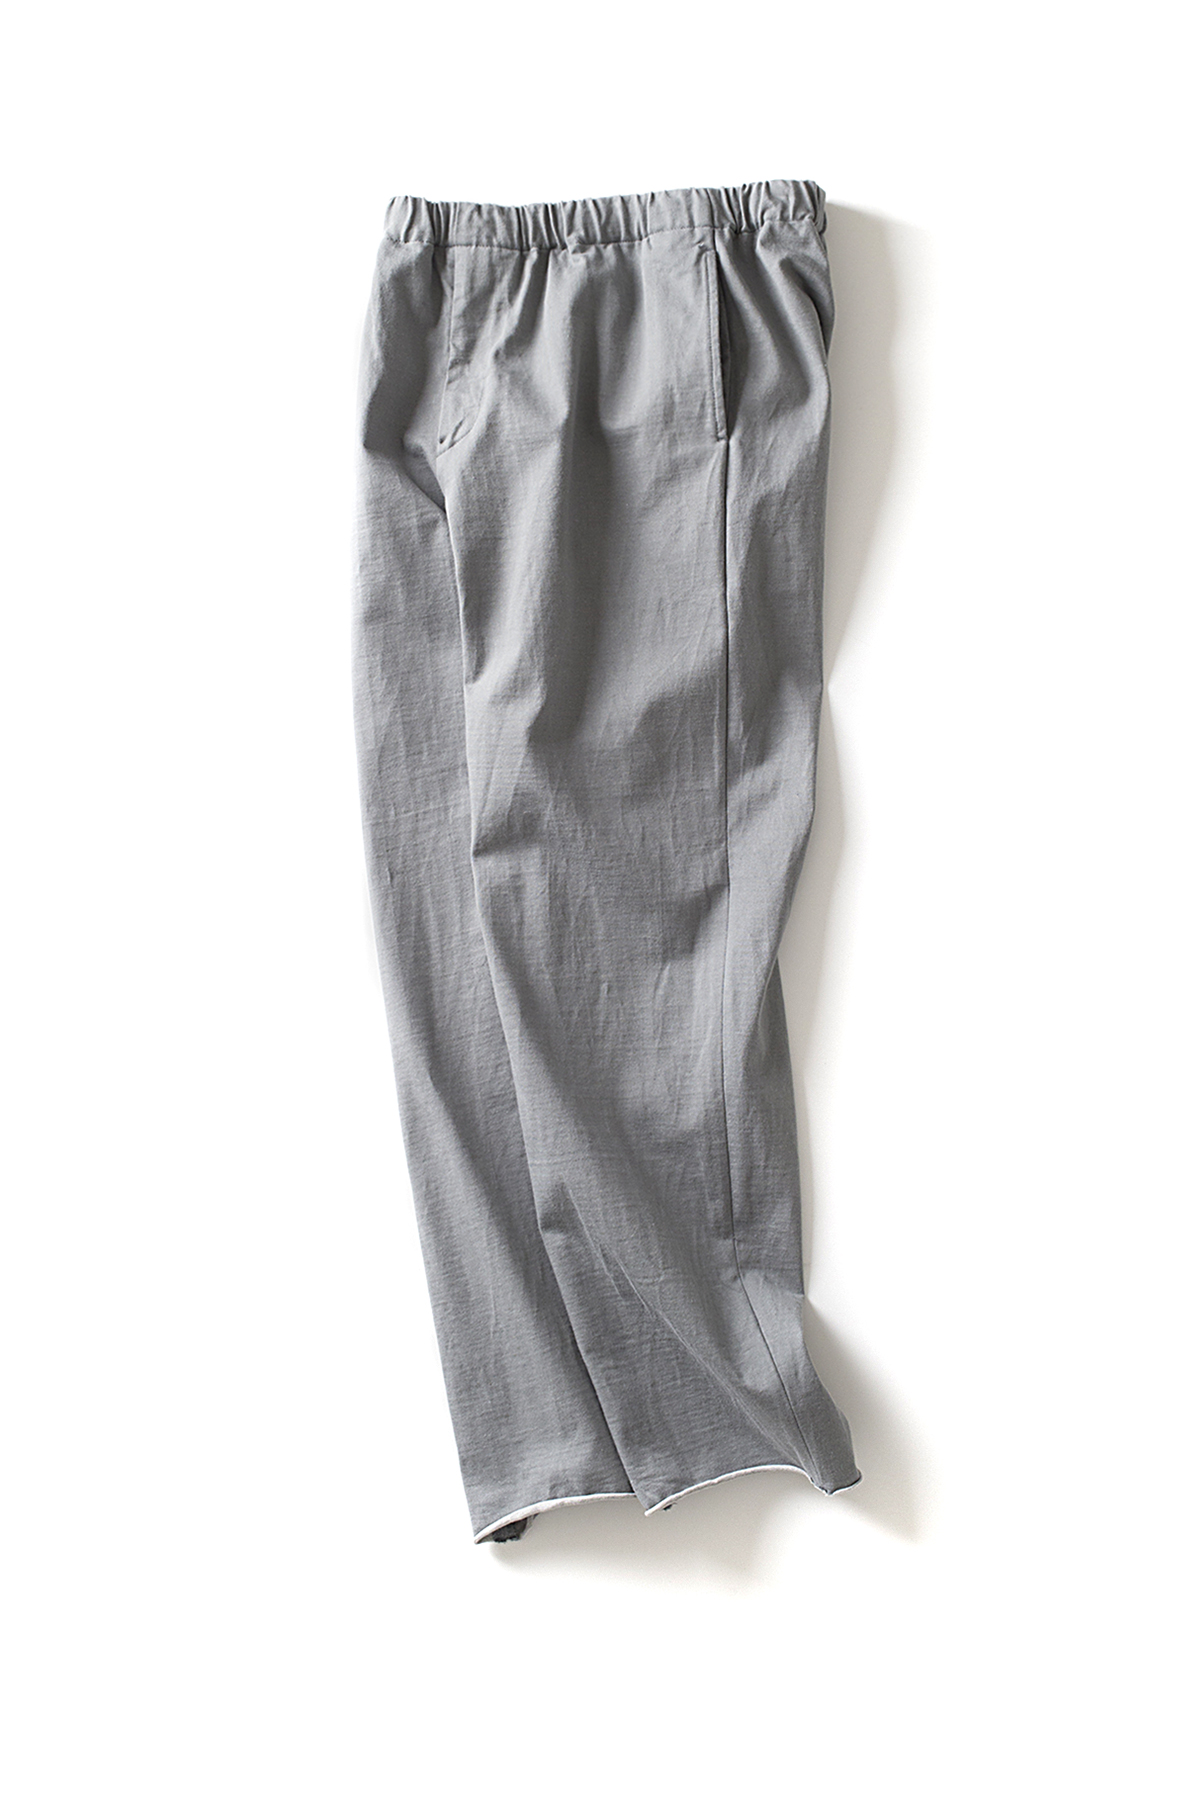 Auralee : Stand-Up Easy Pants (Blue Grey)